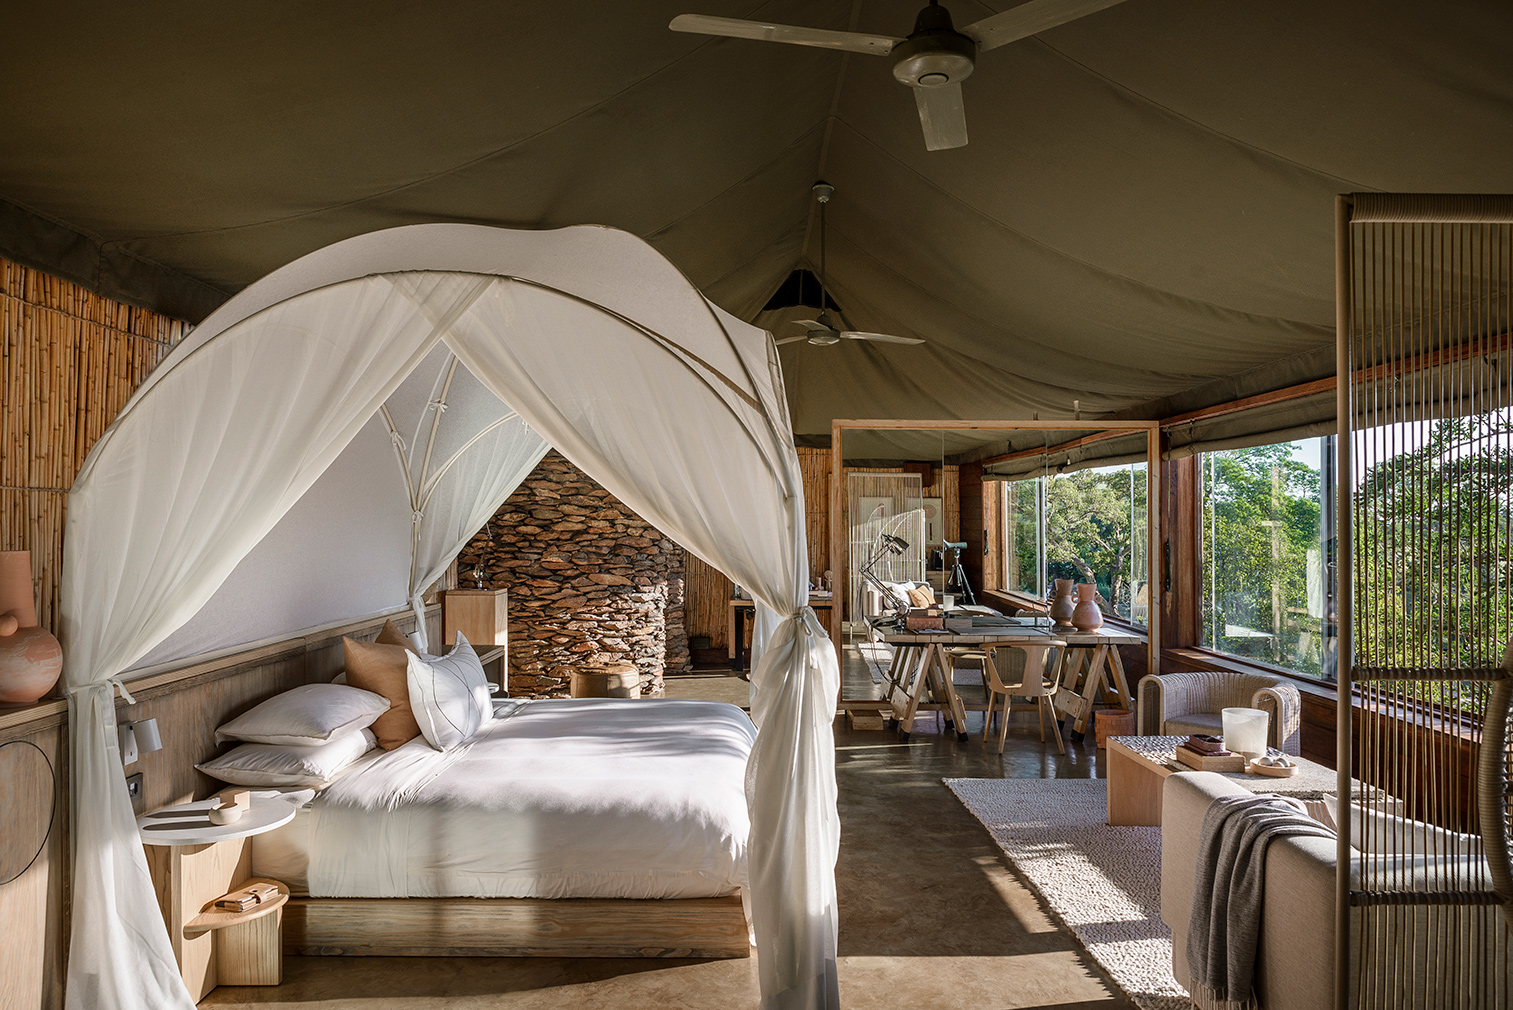 Singita Faru Faru tented bedroom suite. Photography: Adriaan Louw